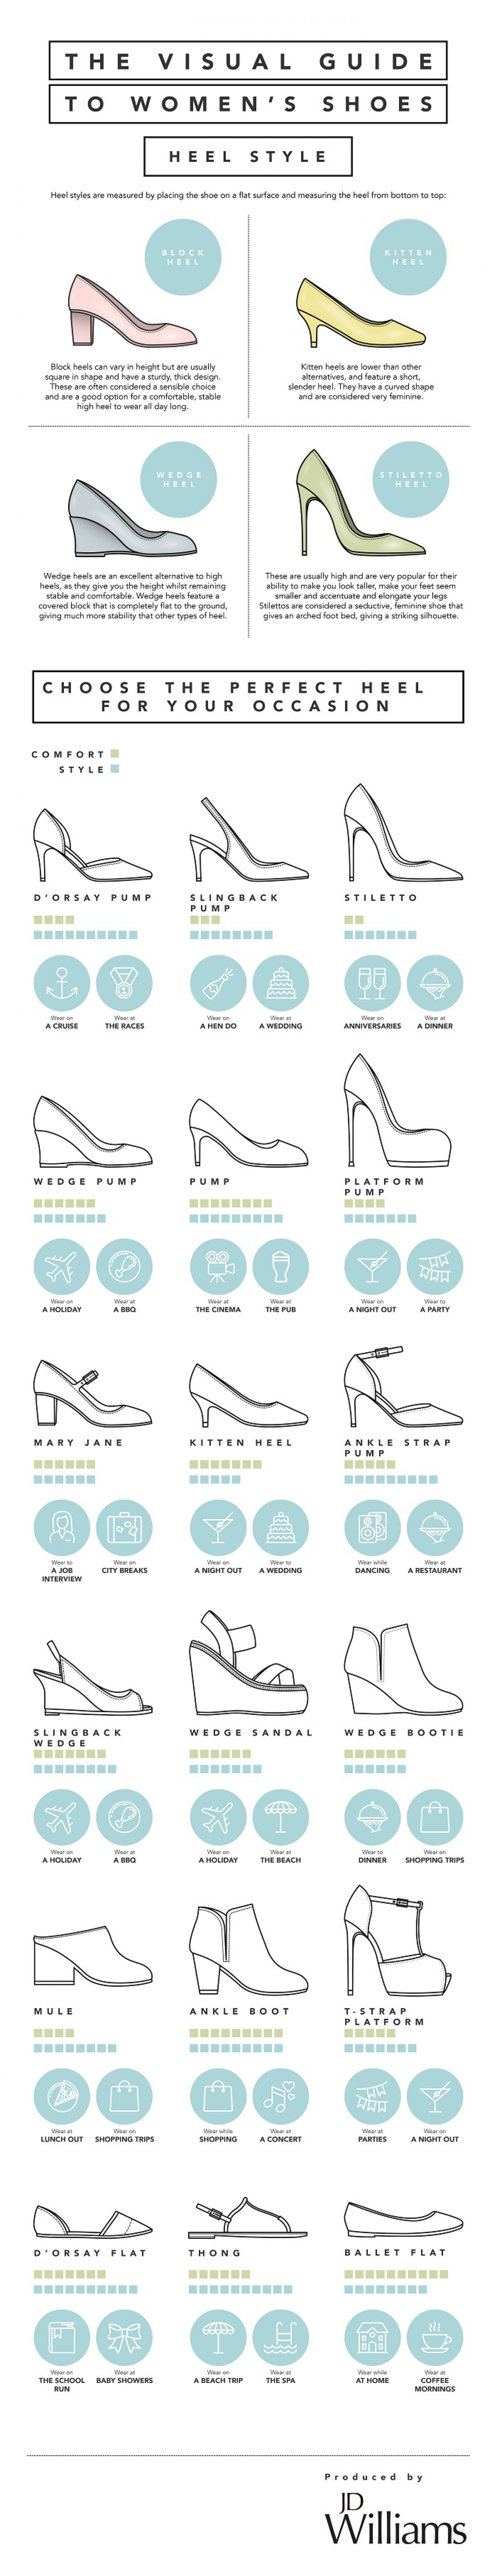 The Visual Guide to Shoes Infographic